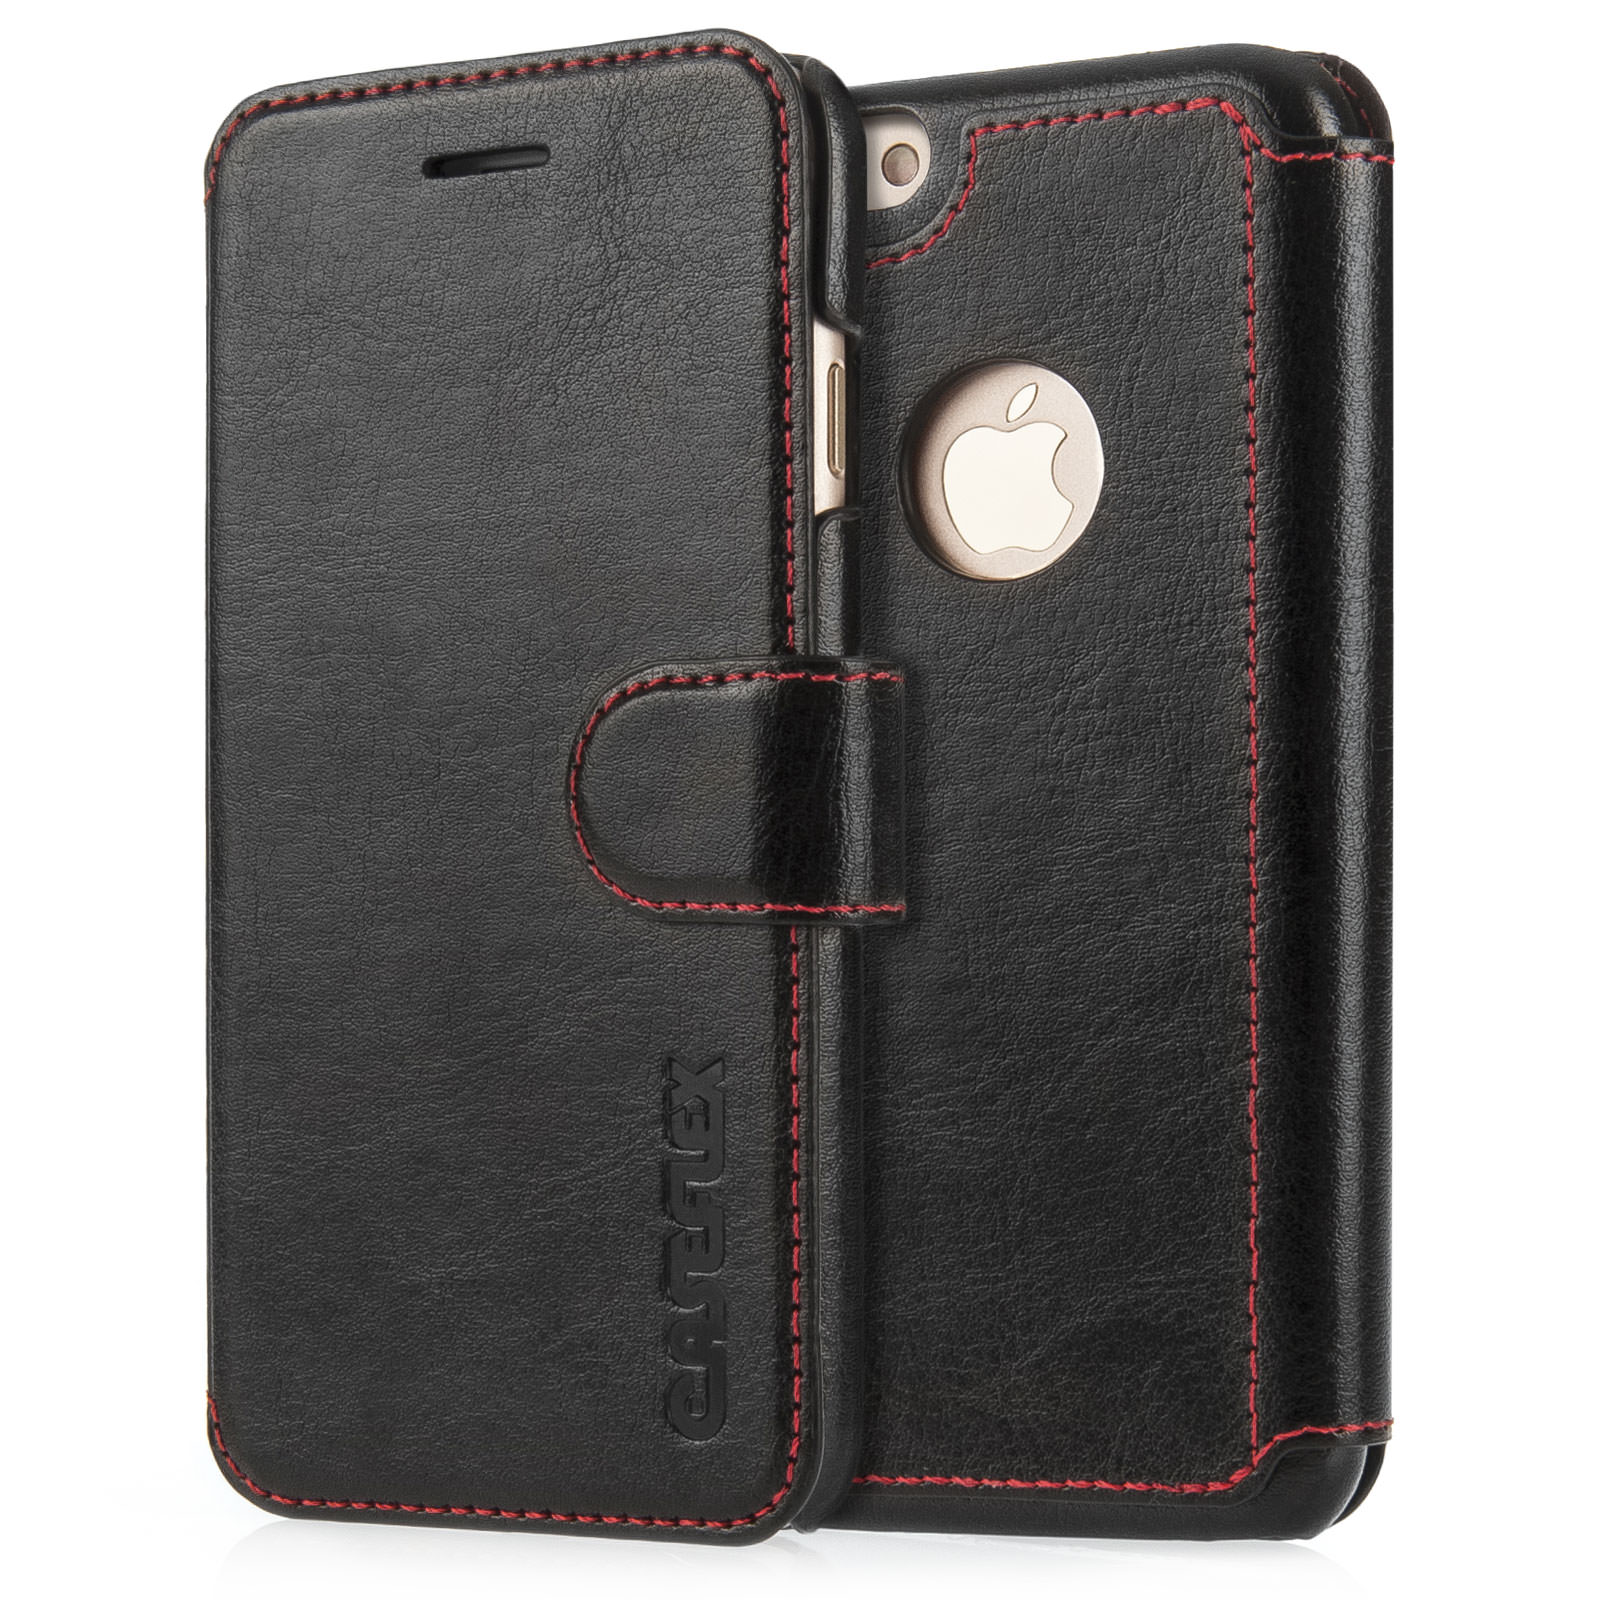 low priced c551c 1f8ea Caseflex iPhone 7 Leather-Effect Wallet Case - Black with Red Stitching  (Retail Box)